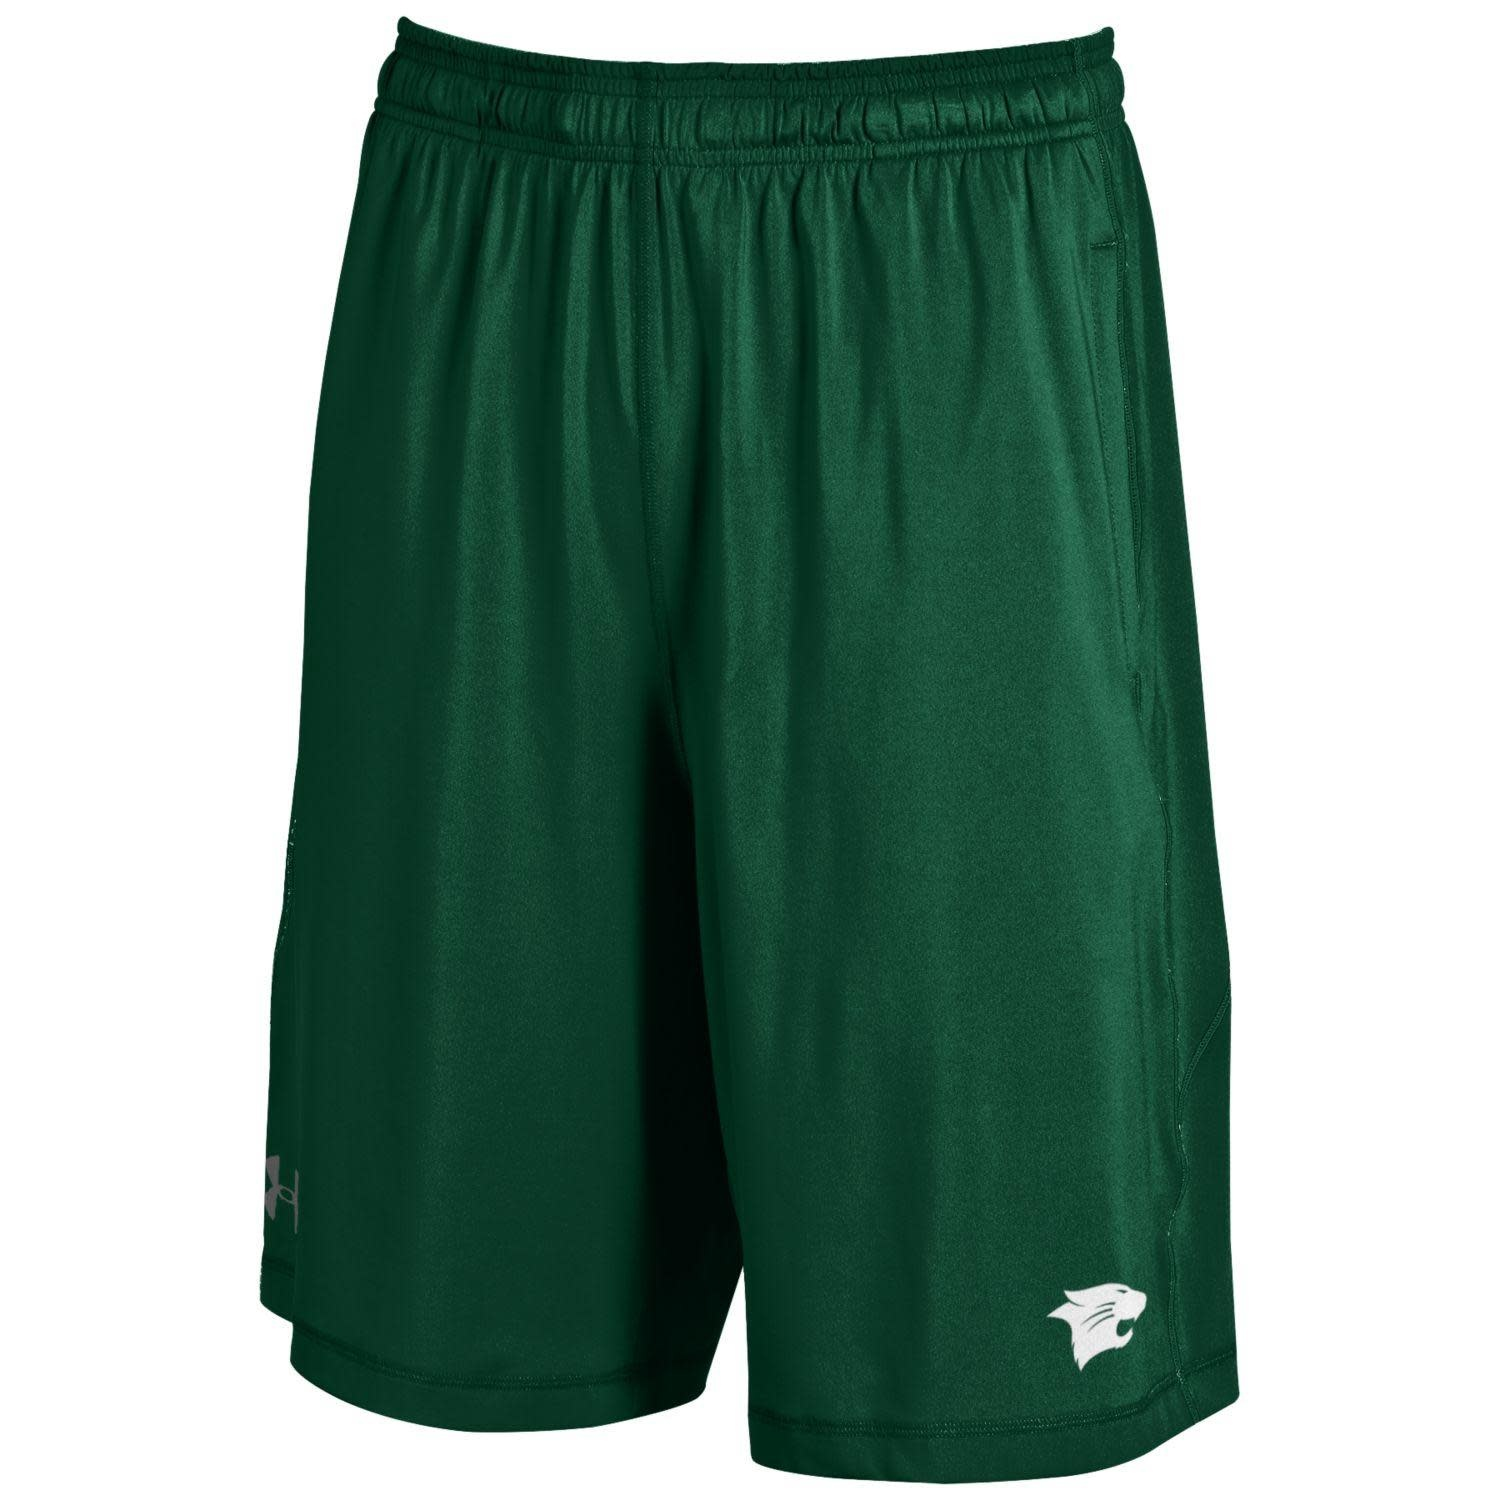 Under Armour Shorts: UA Raid Solid w/Wildcat - Forest